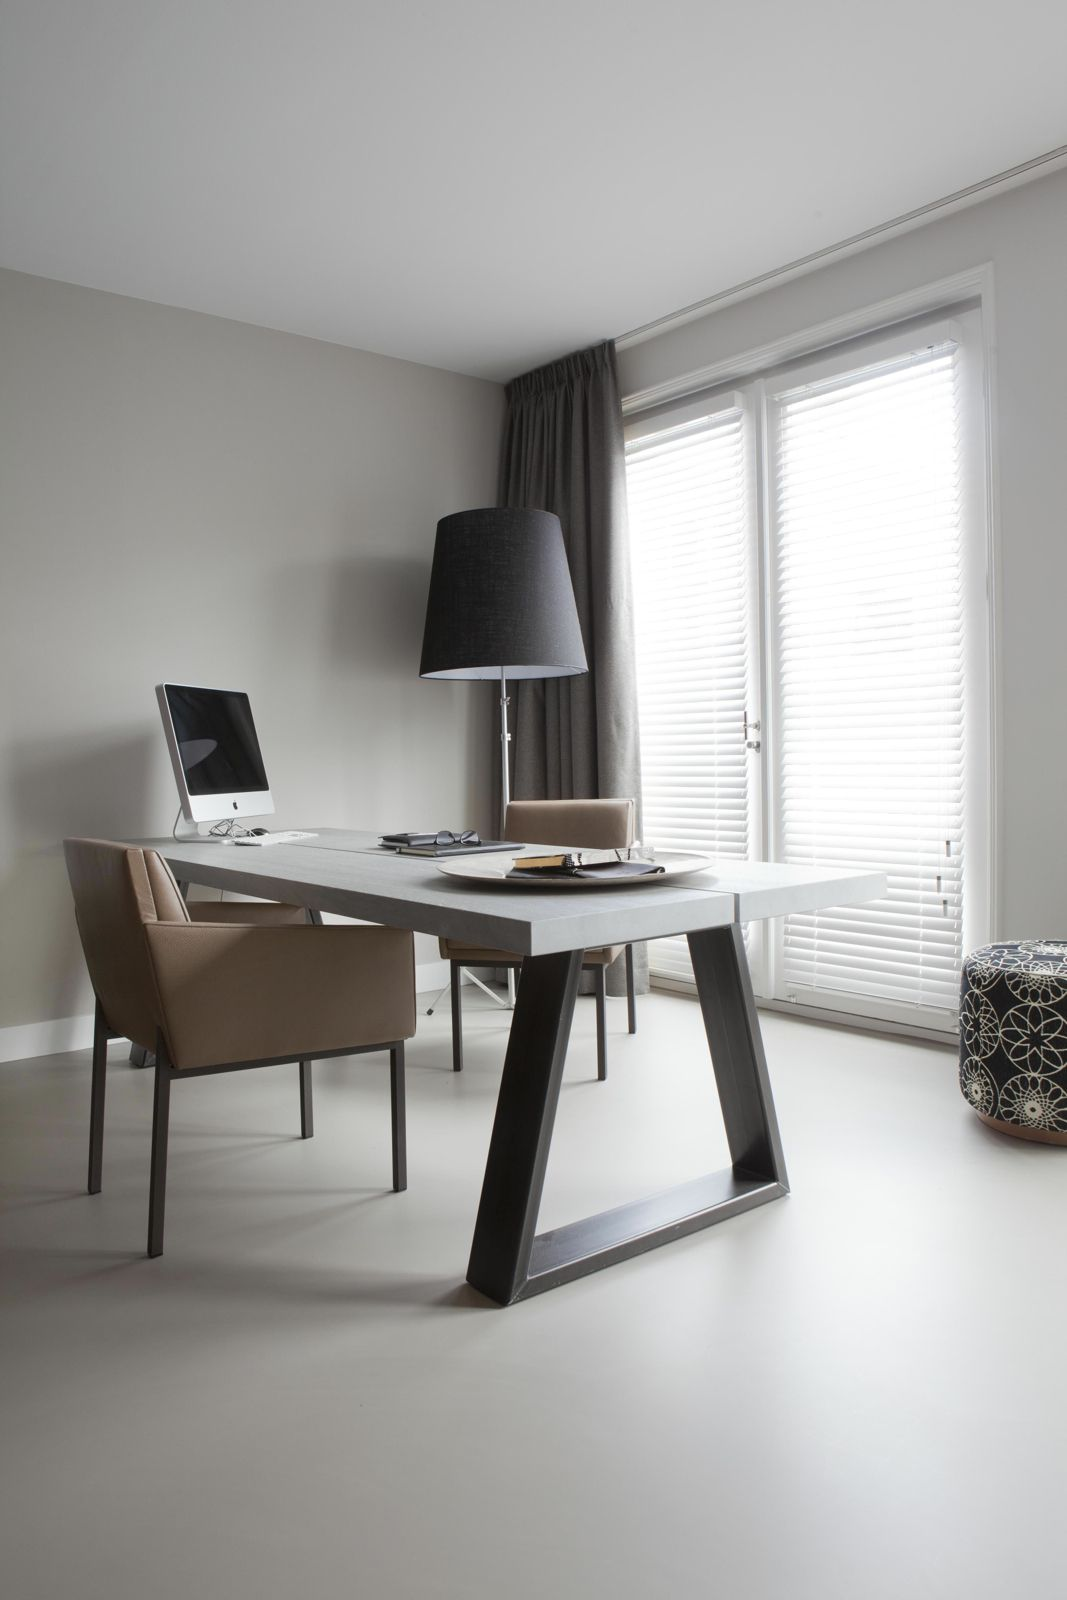 Home office interior ideas remy meijers interieurarchitectuur droomhuis rtl